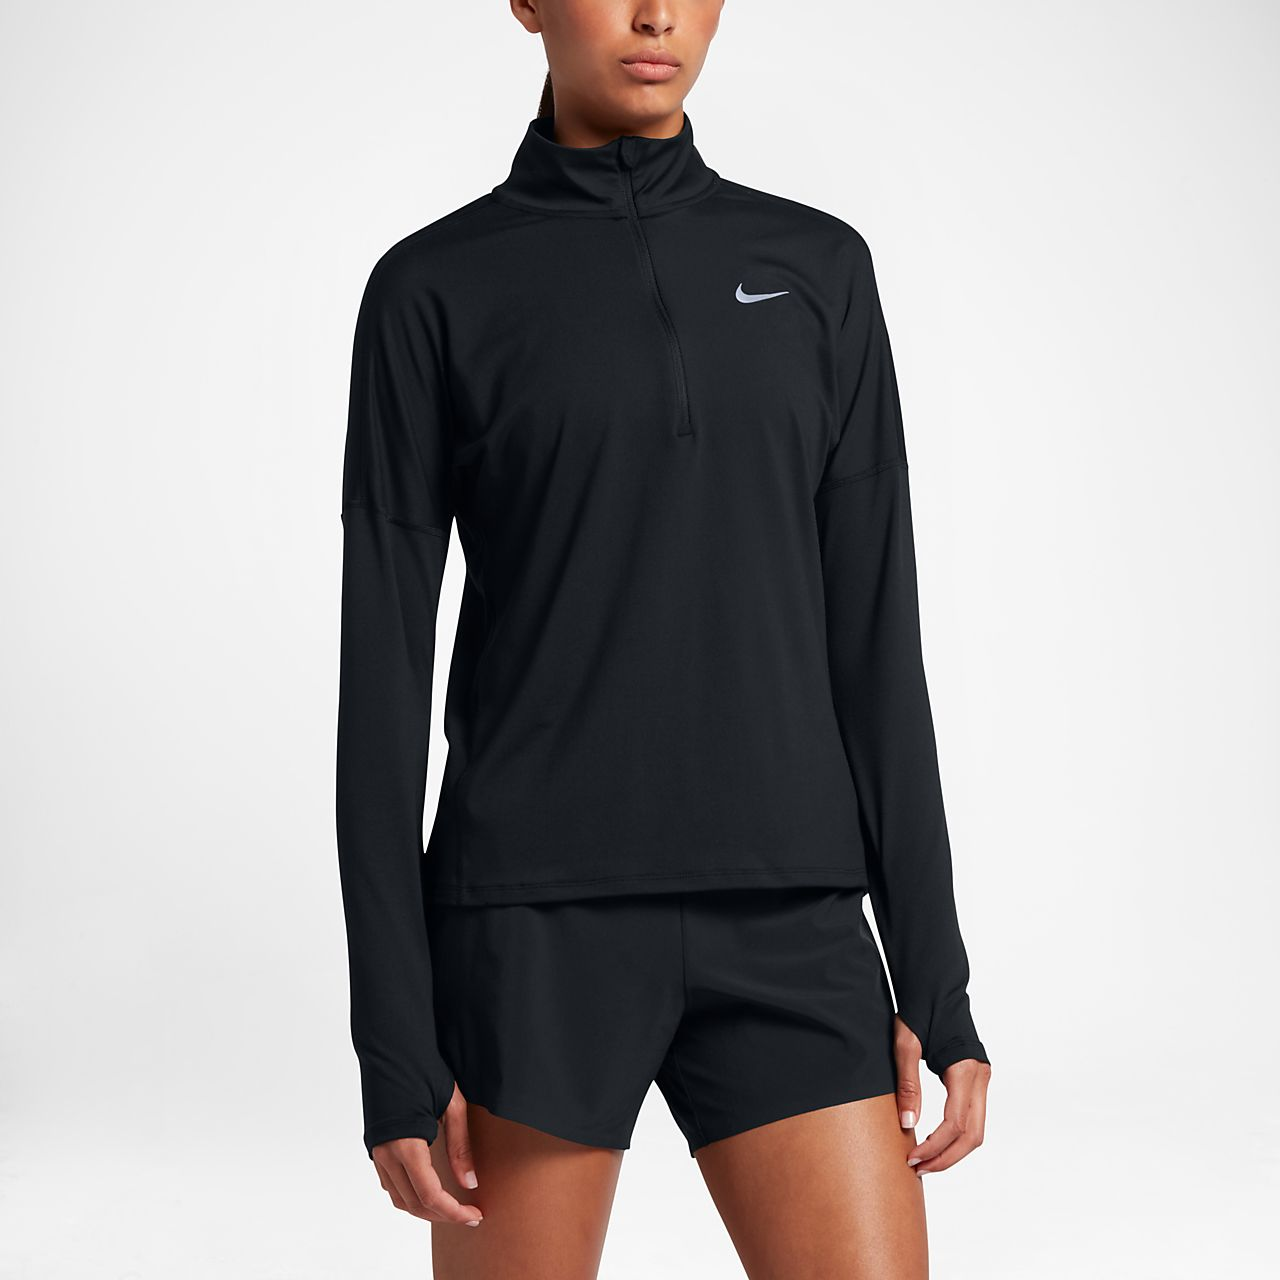 c2f70655152c3 Nike Dri-FIT Women's Long-Sleeve Running Half-Zip Top. Nike.com HR